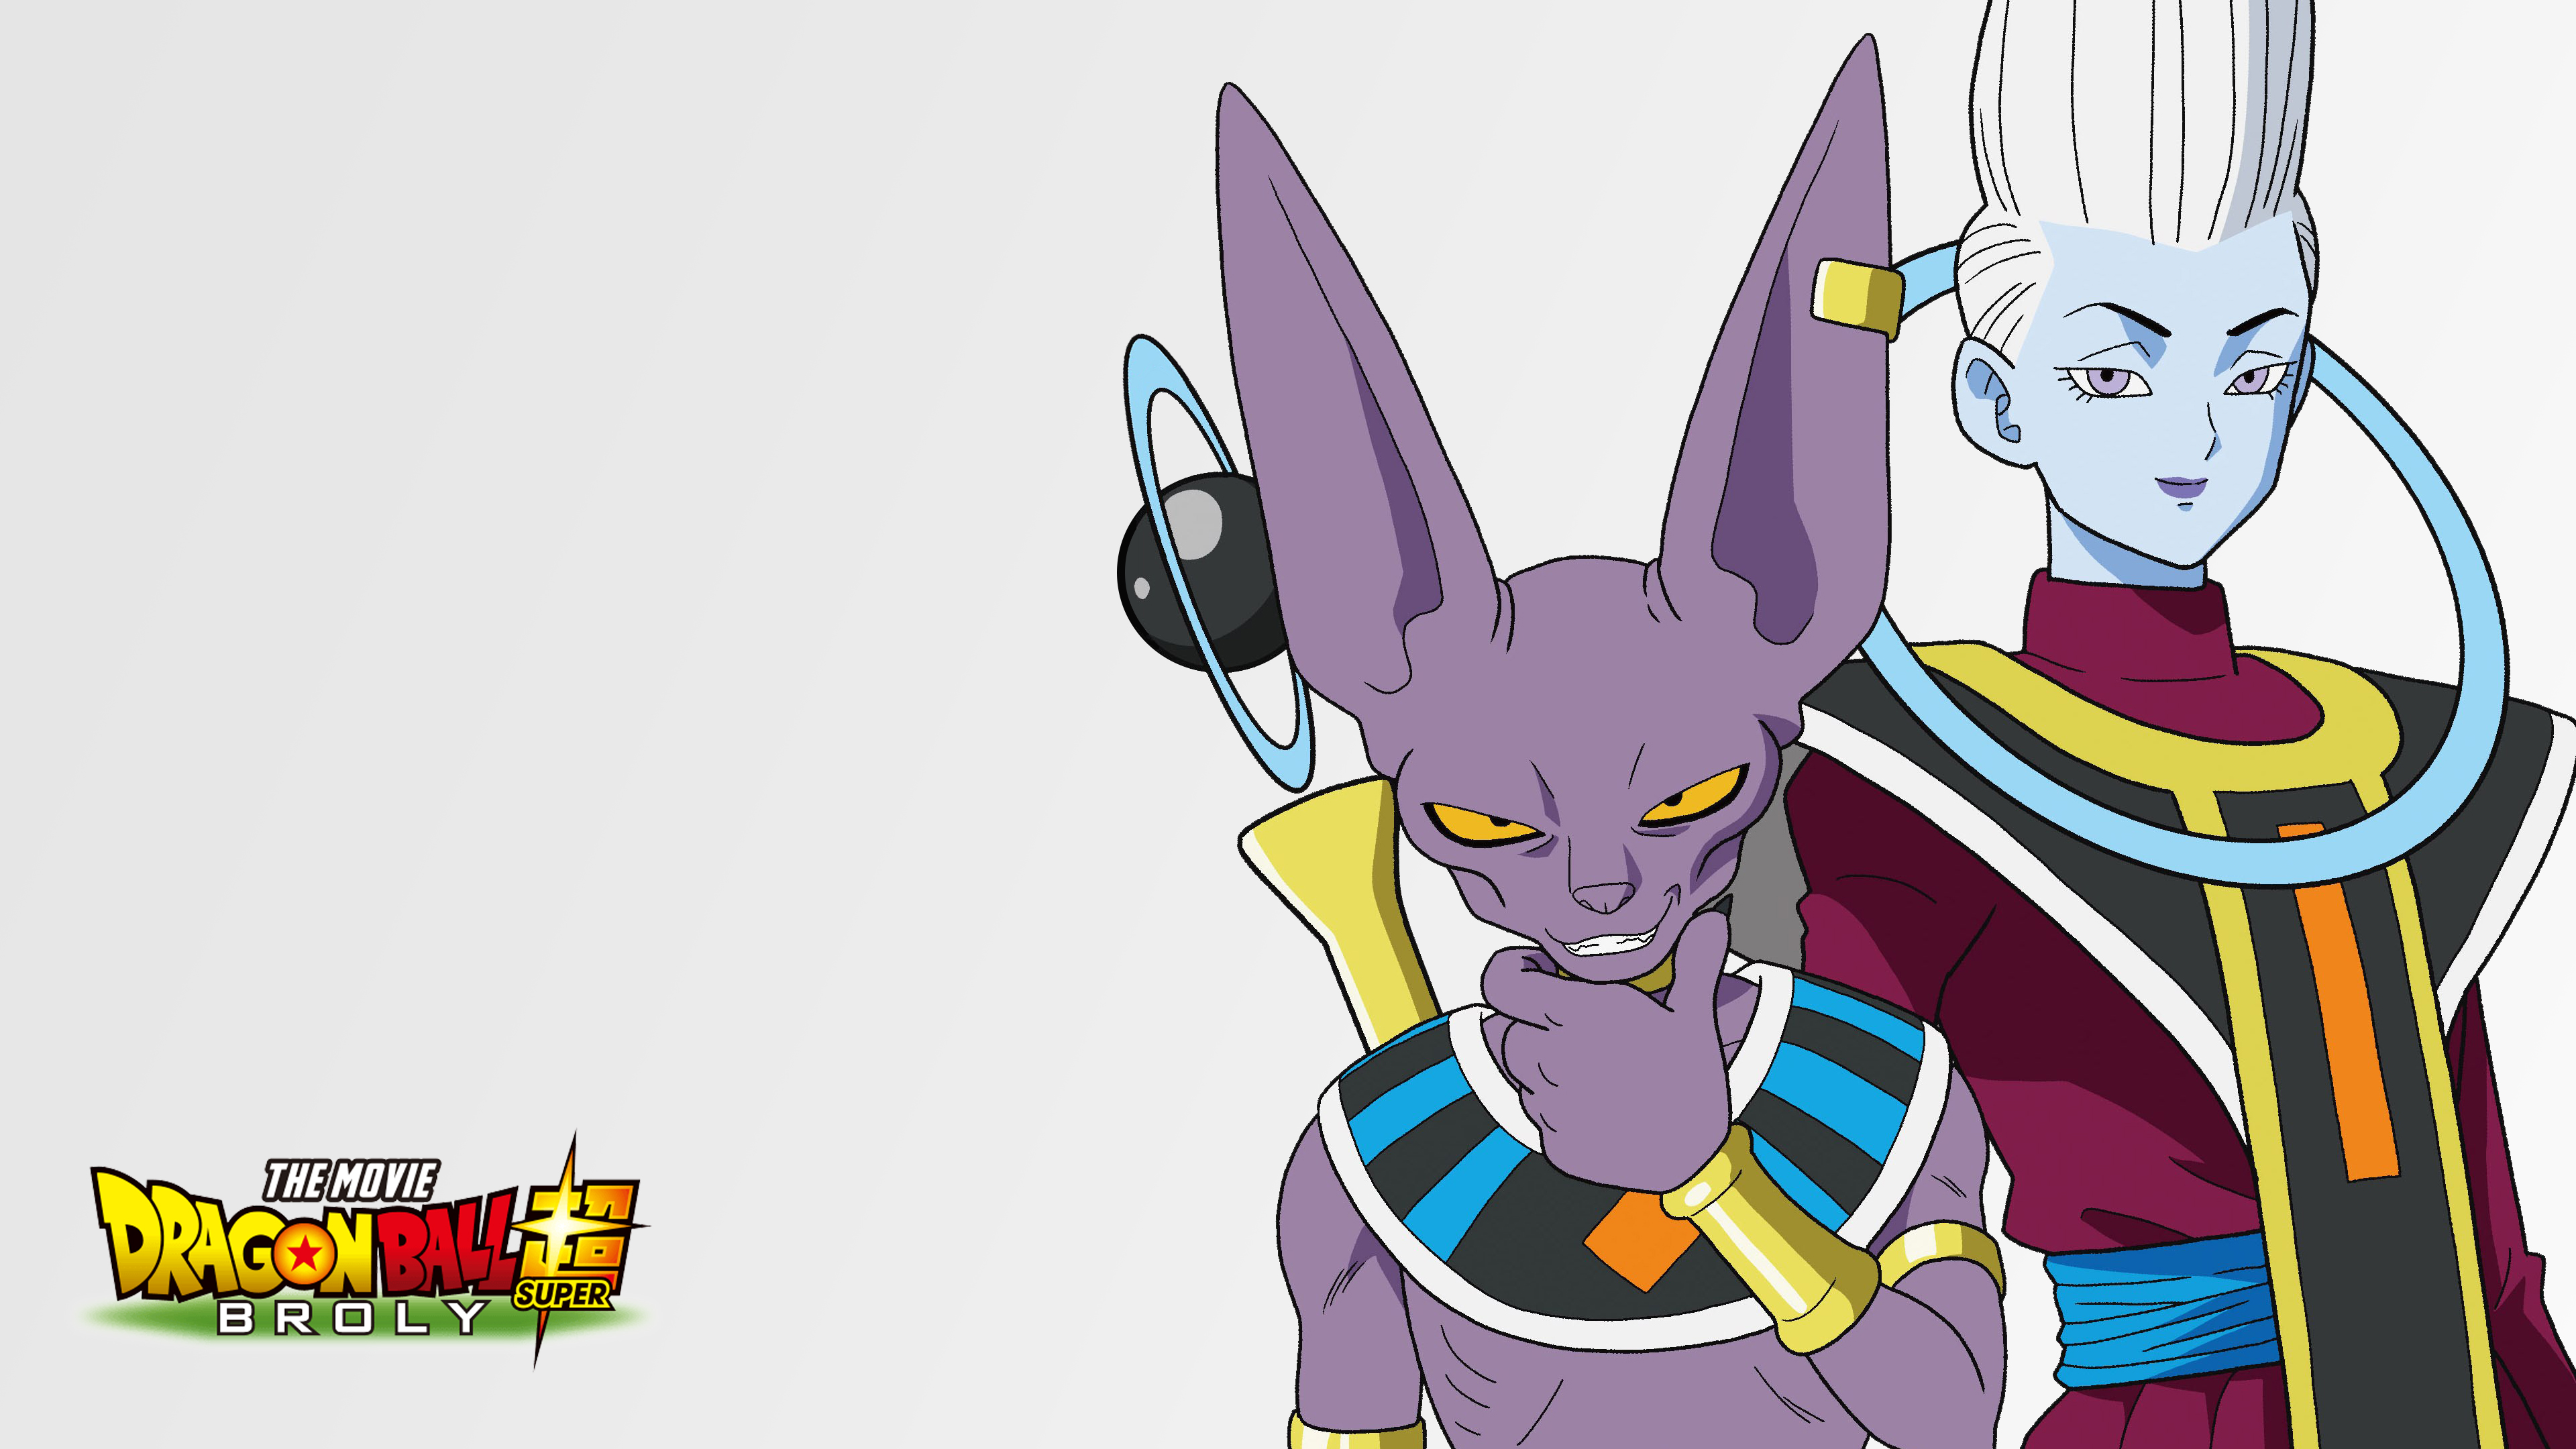 Dragon Ball Super Broly Beerus And Whis Wallpapers Cat With Monocle